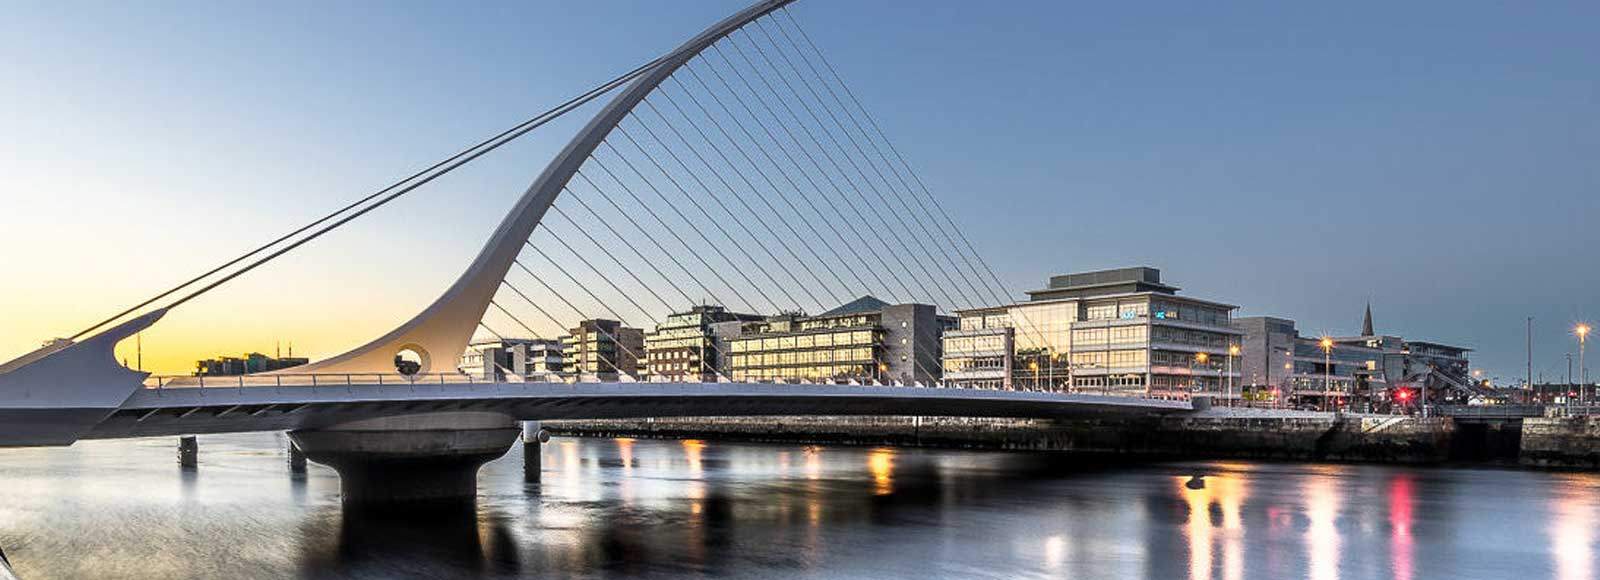 Cheap Flight Fares to Dublin. Flight Tickets Discounts to Dublin